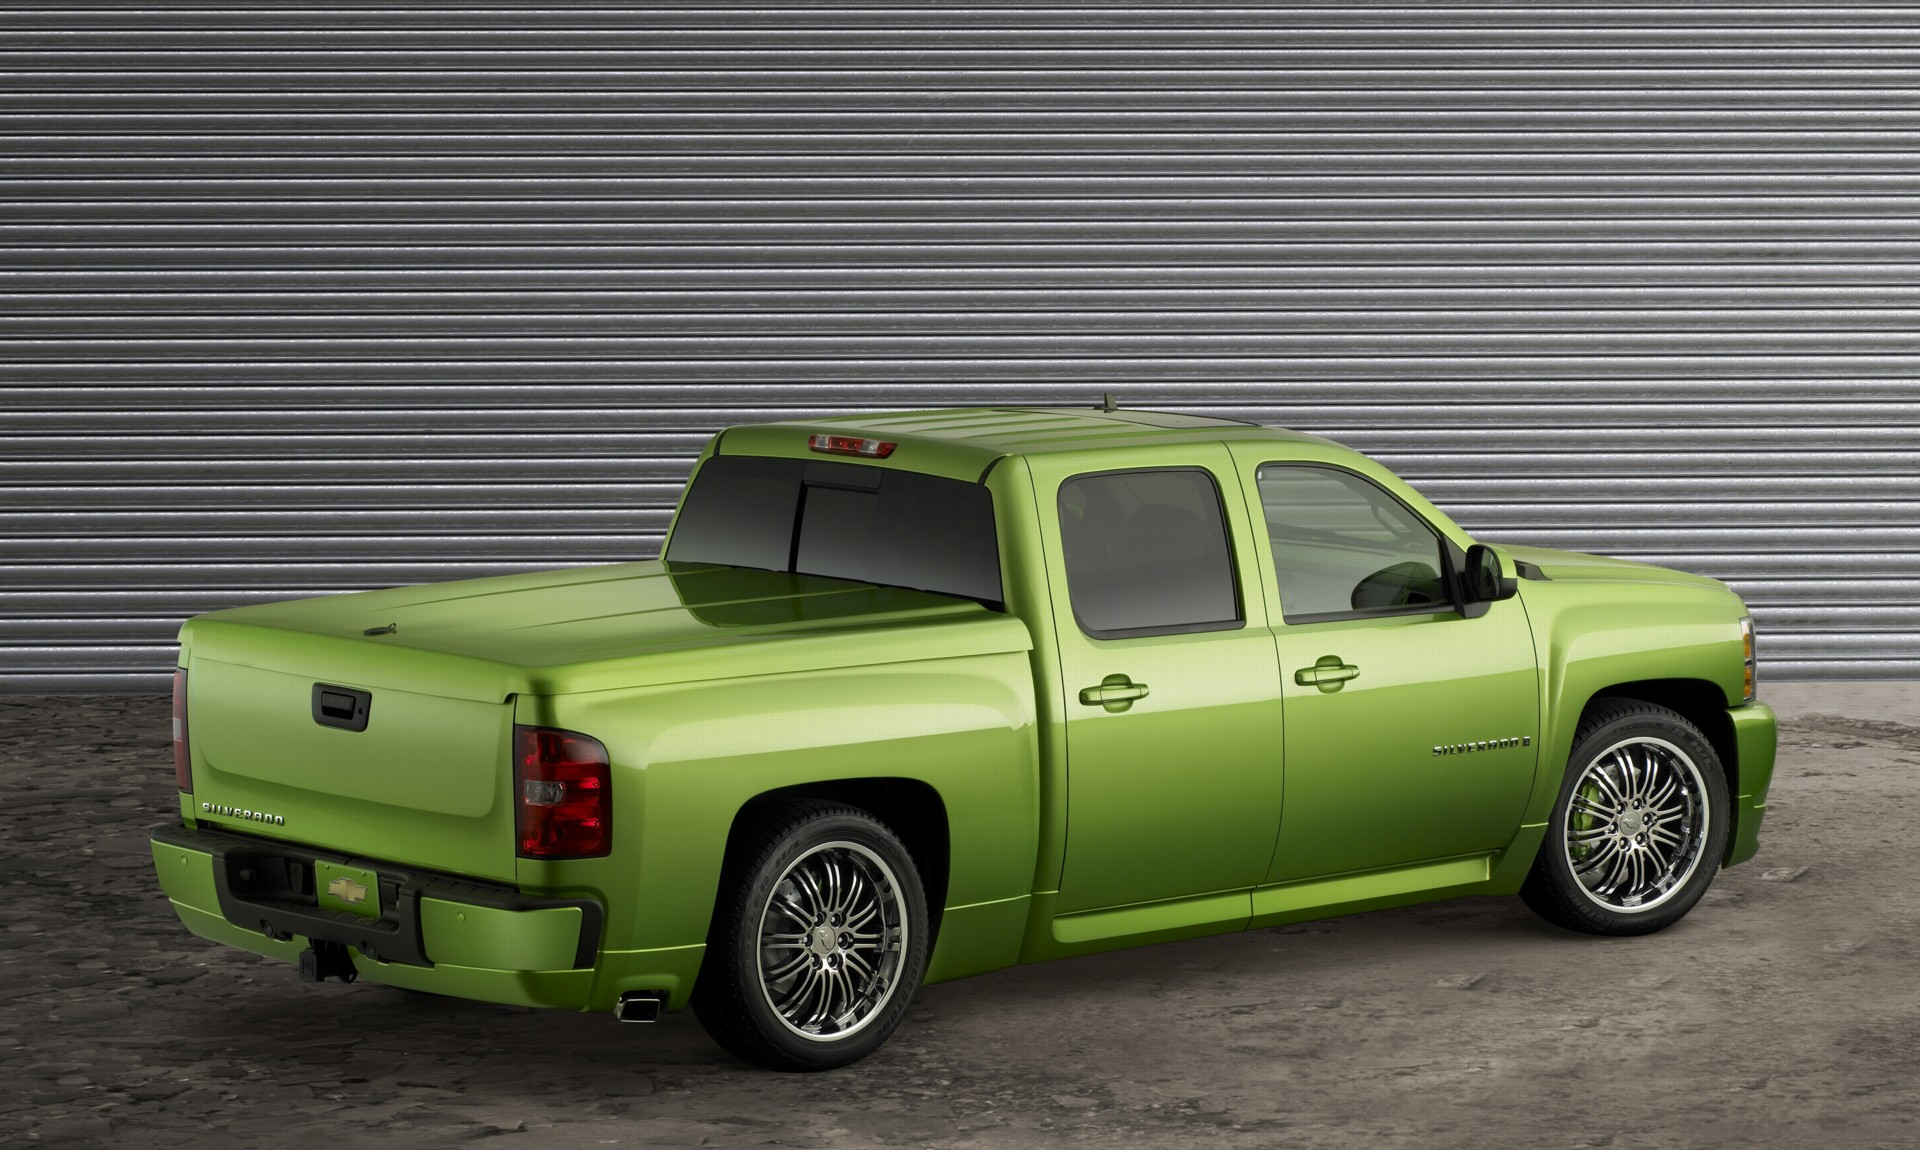 2006 chevrolet silverado rally sport pictures history value research news. Black Bedroom Furniture Sets. Home Design Ideas